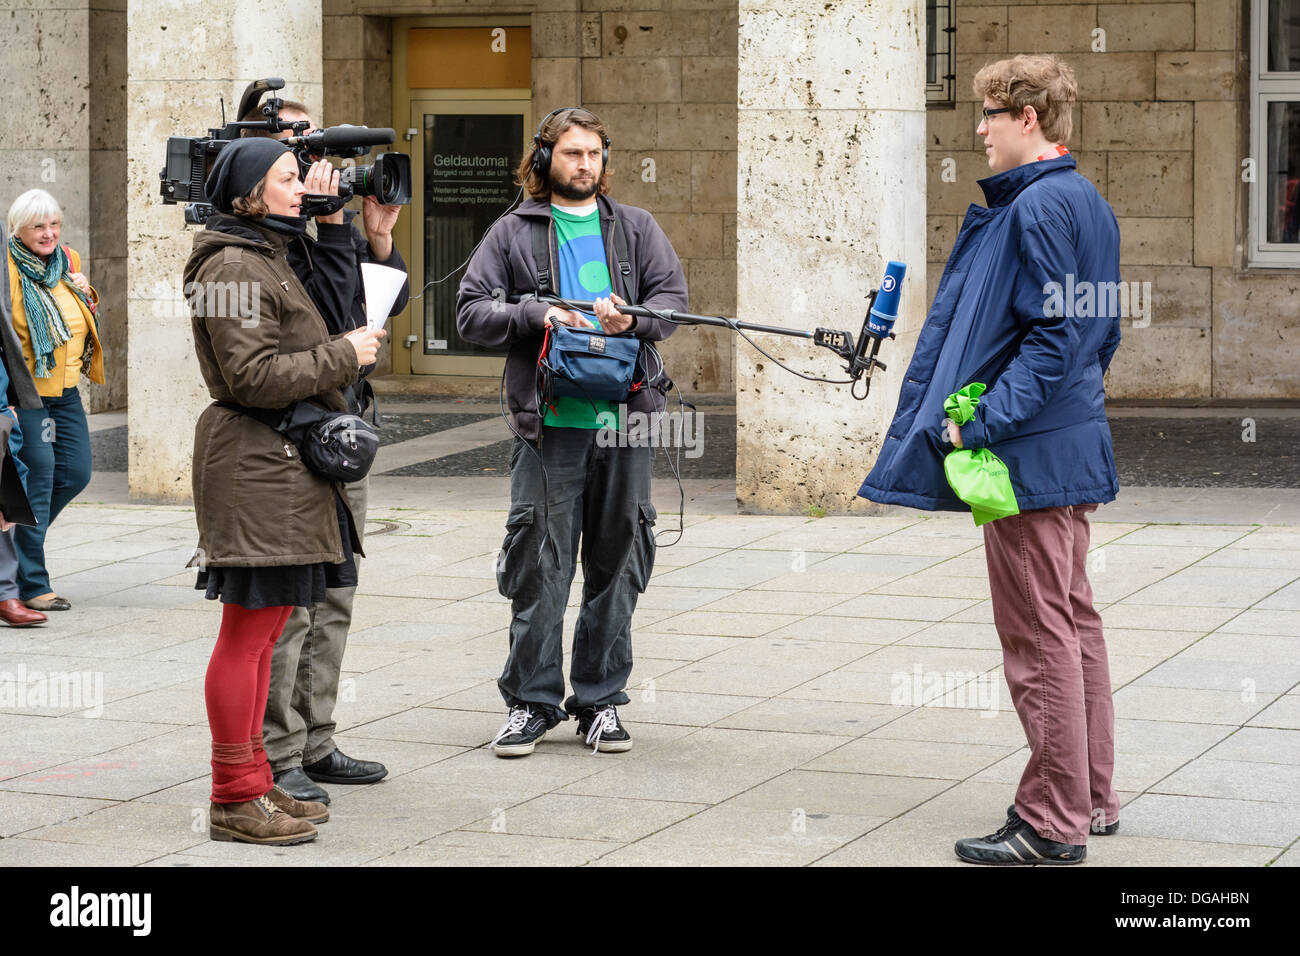 German television camera crew (ARD, WDR) interviewing a young Caucasian man on the street – Königstraße Stuttgart Stock Photo